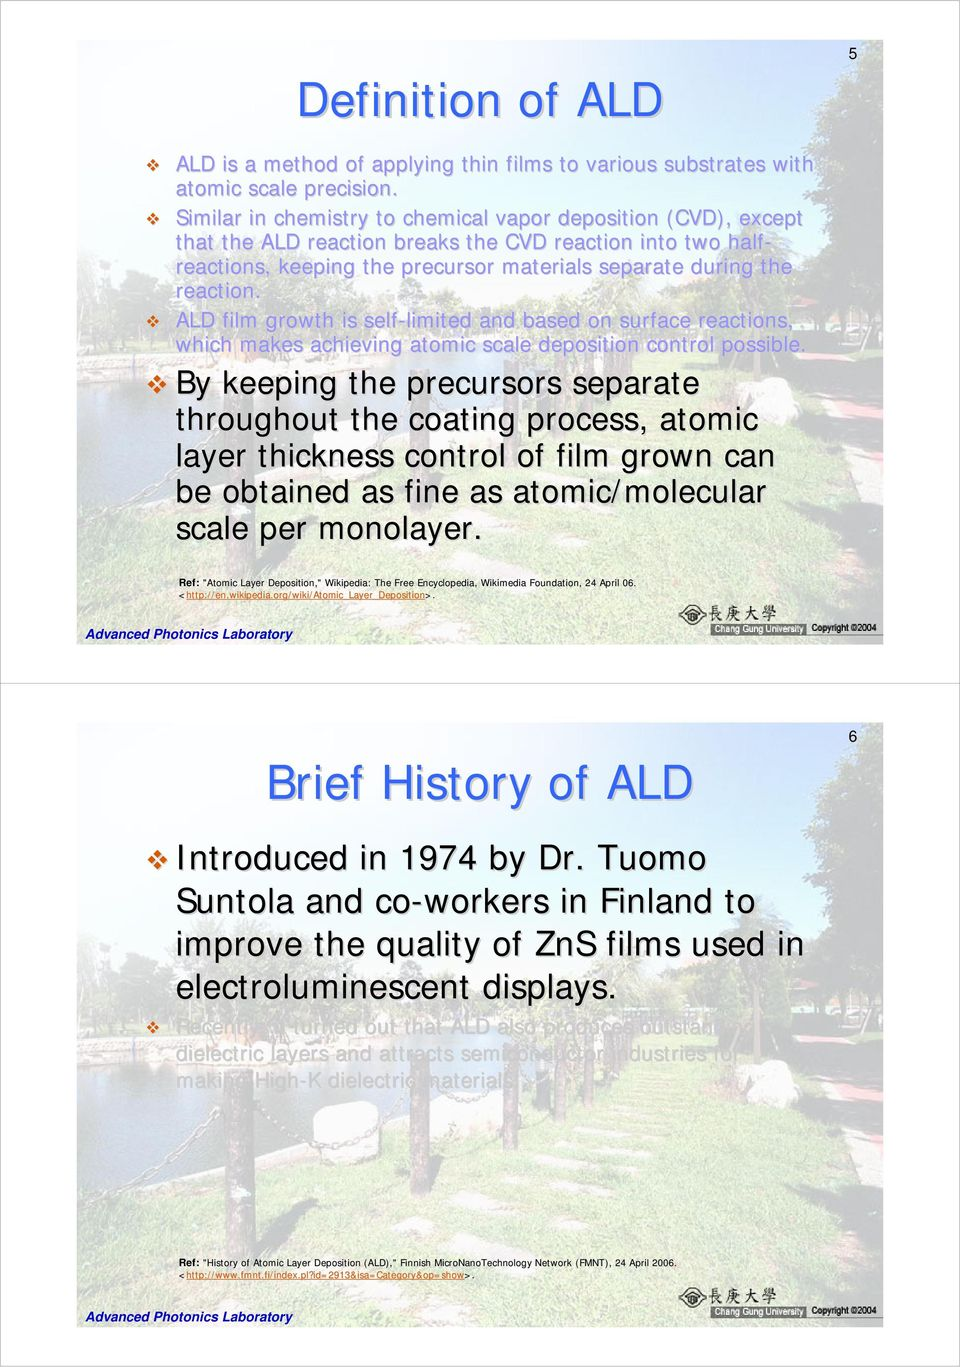 ALD film growth is self-limited limited and based on surface reactions, which makes achieving atomic scale deposition control possible.